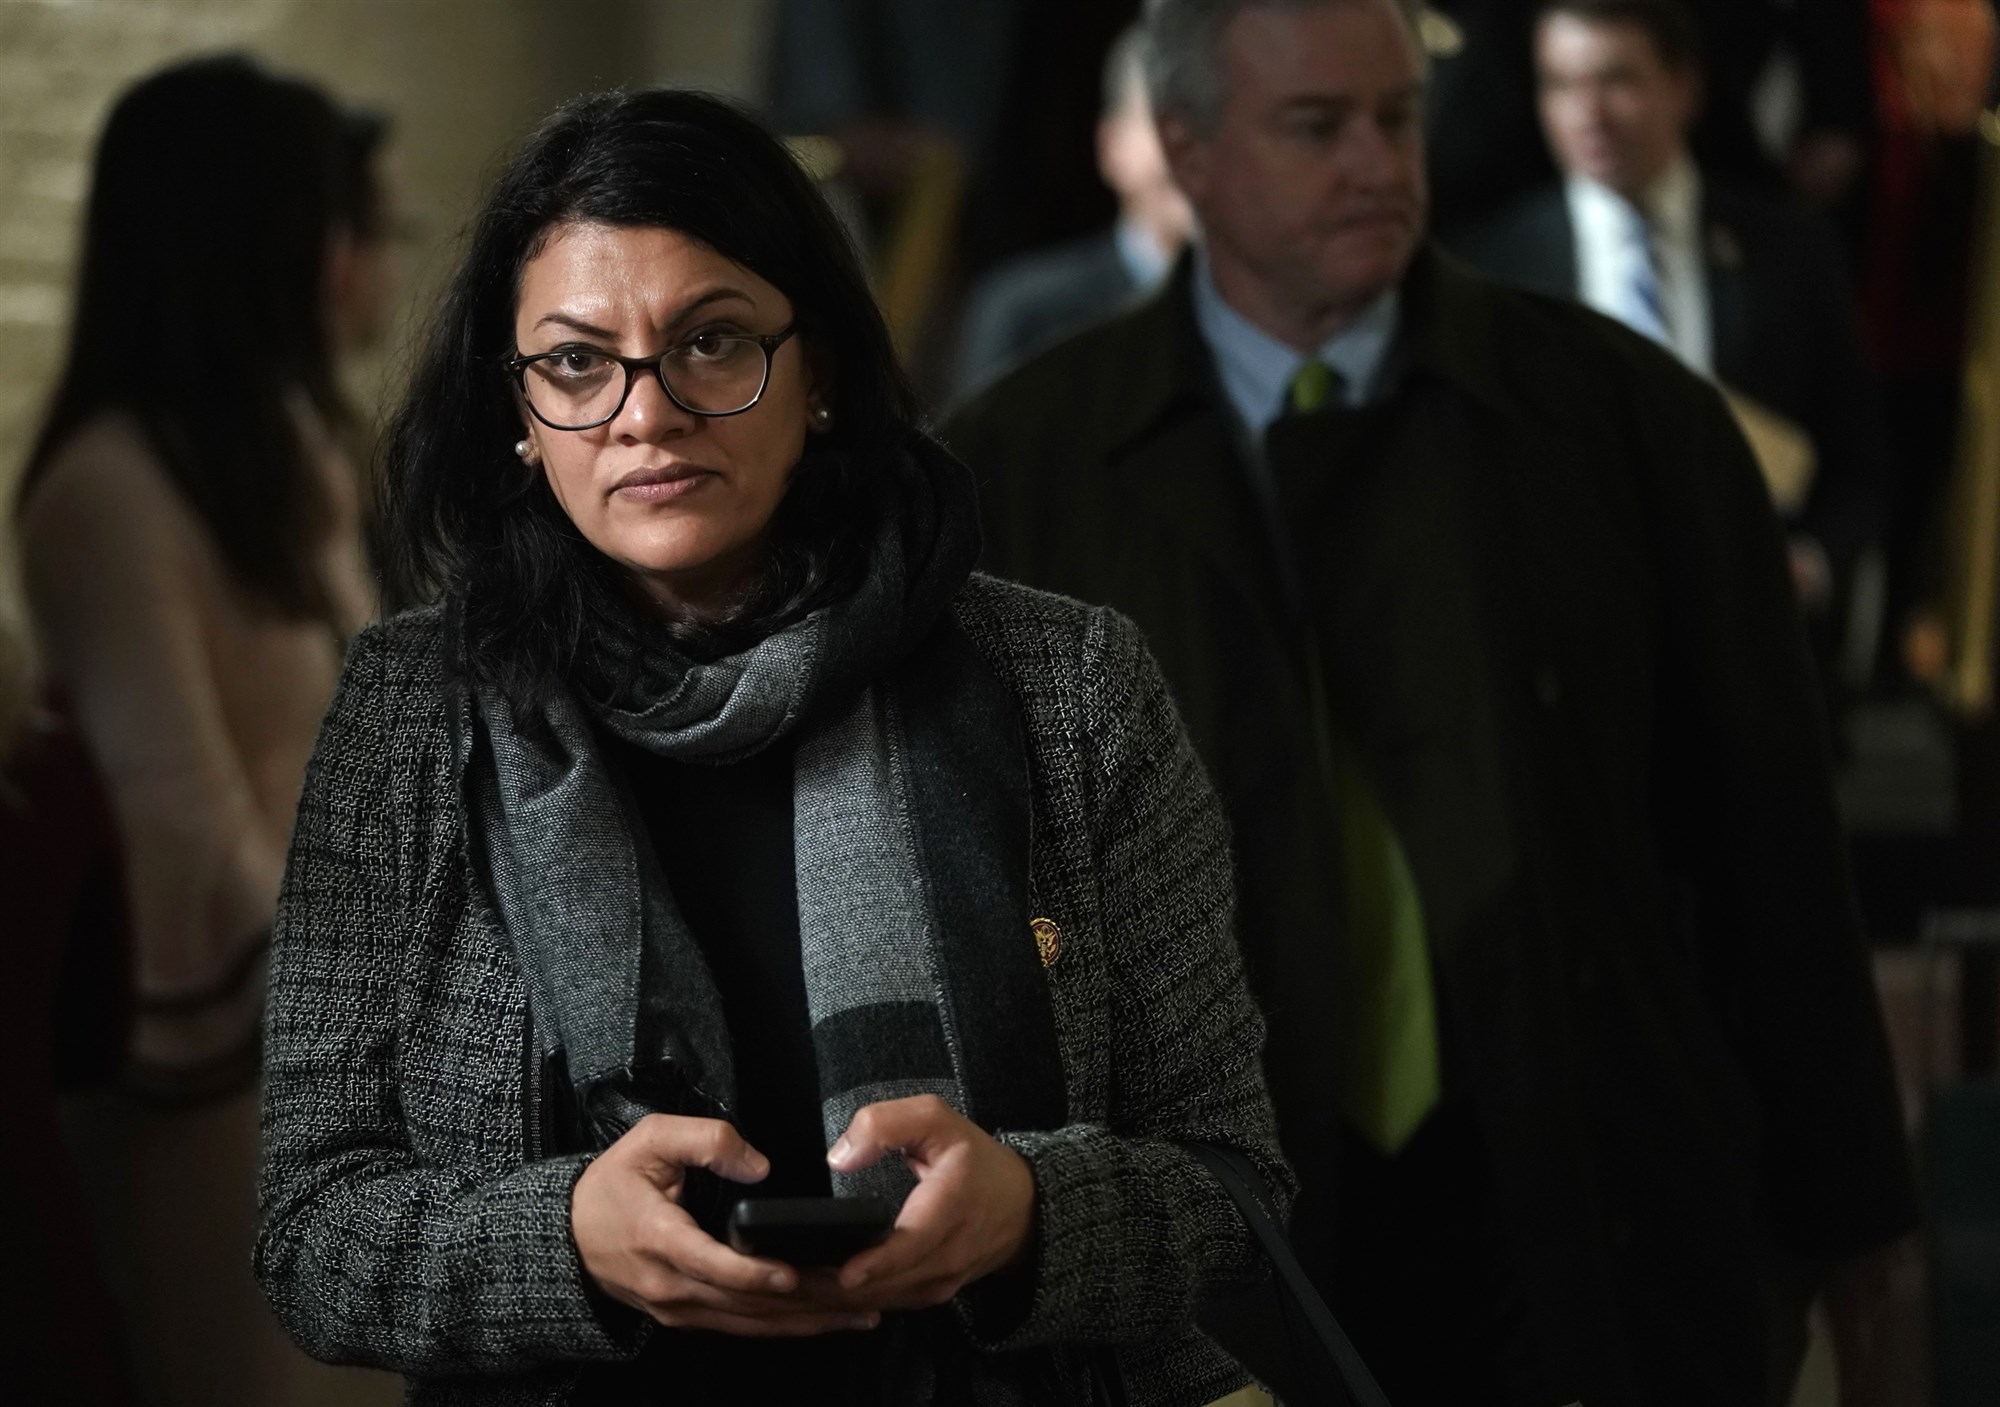 Florida official facing calls to resign for saying Muslim Rep. Tlaib might 'blow up' U.S. Capitol